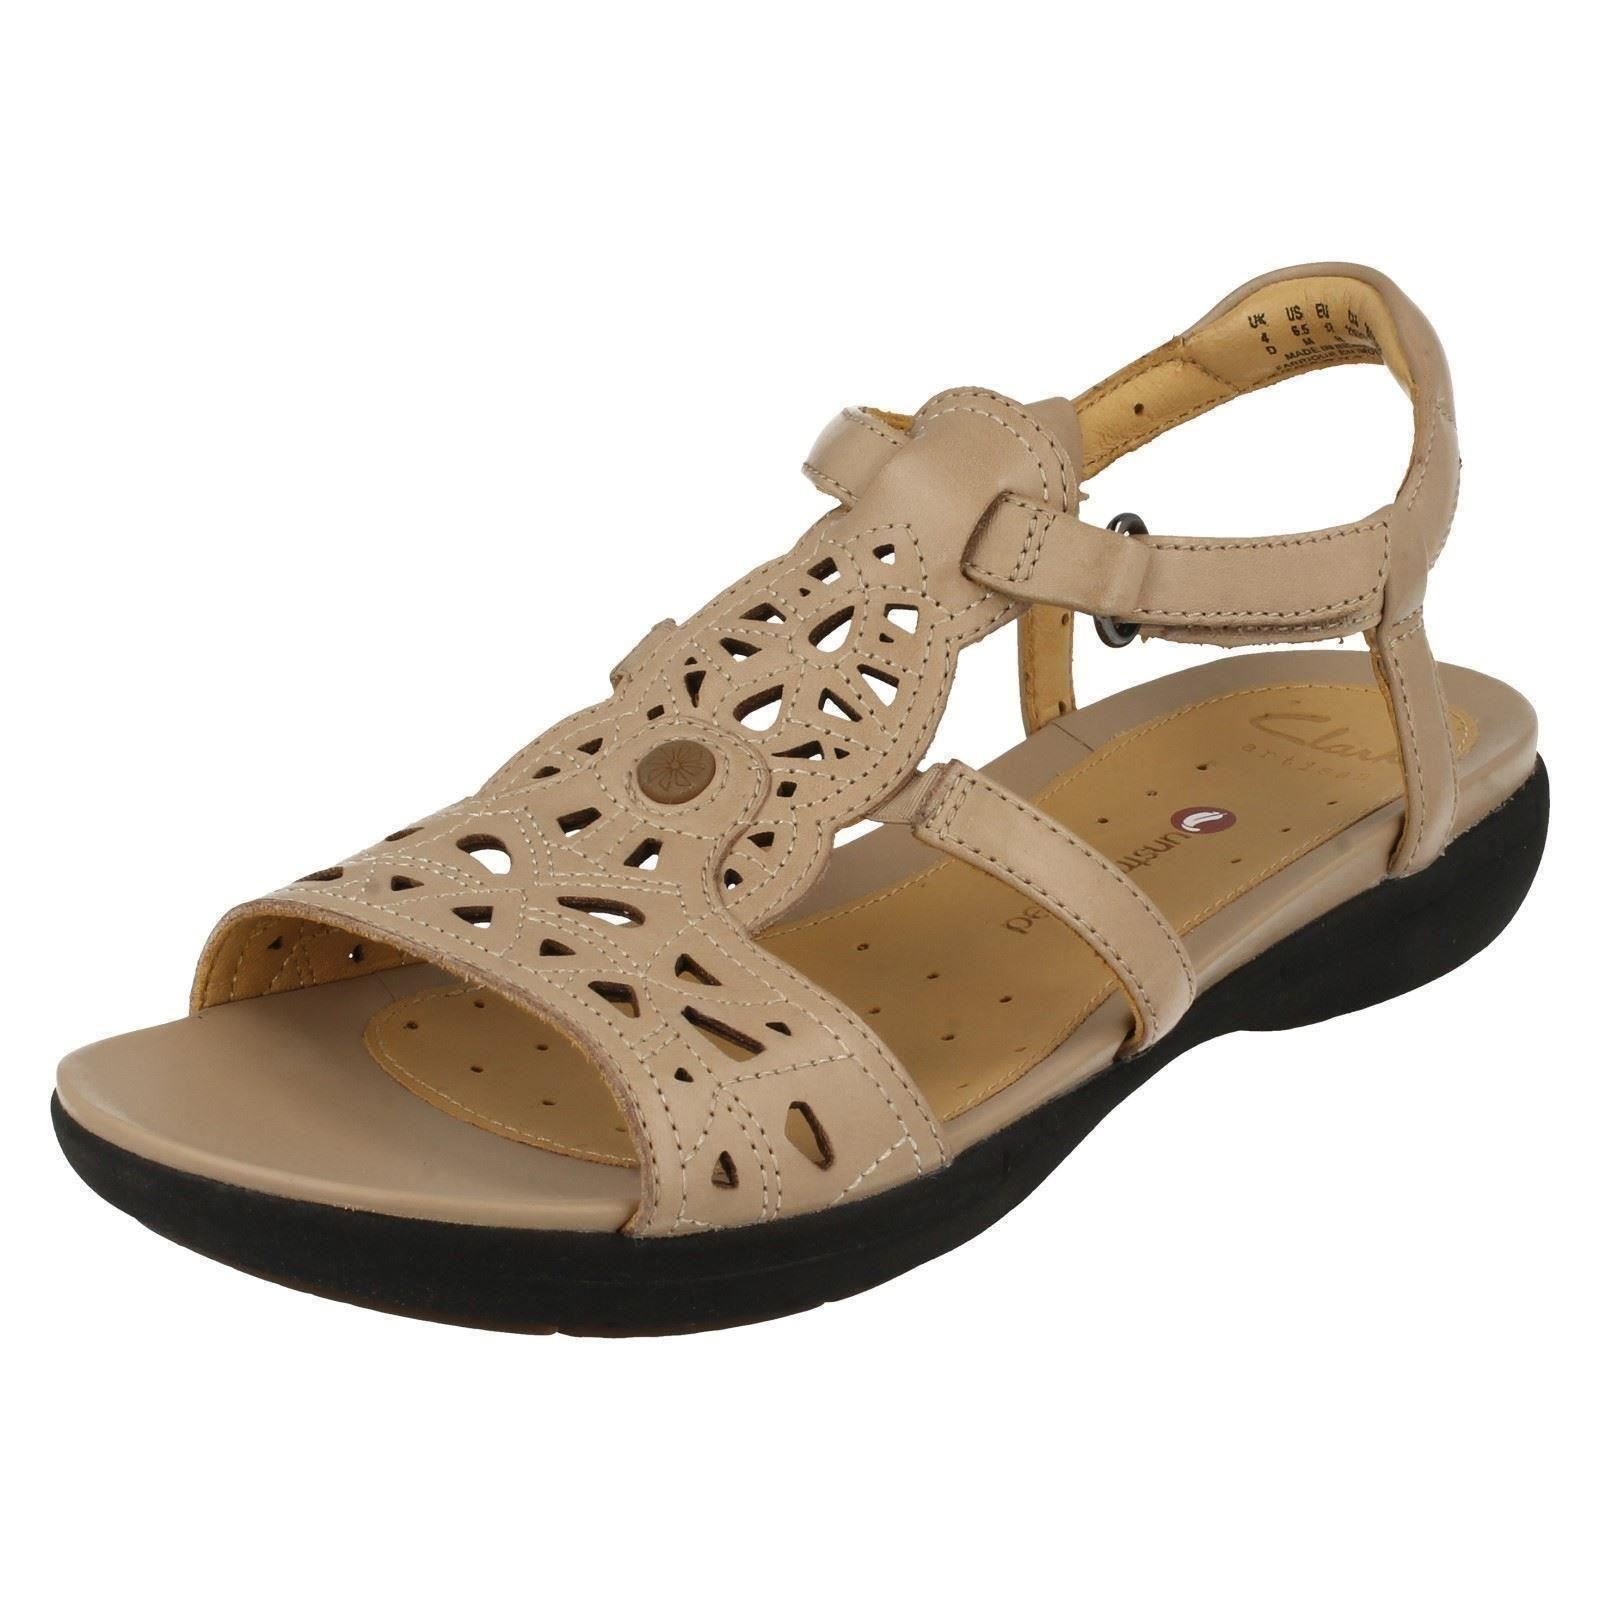 1500e3a73912 Ladies Clarks Unstructured Casual Sandals Un Valencia 7 UK Sand D